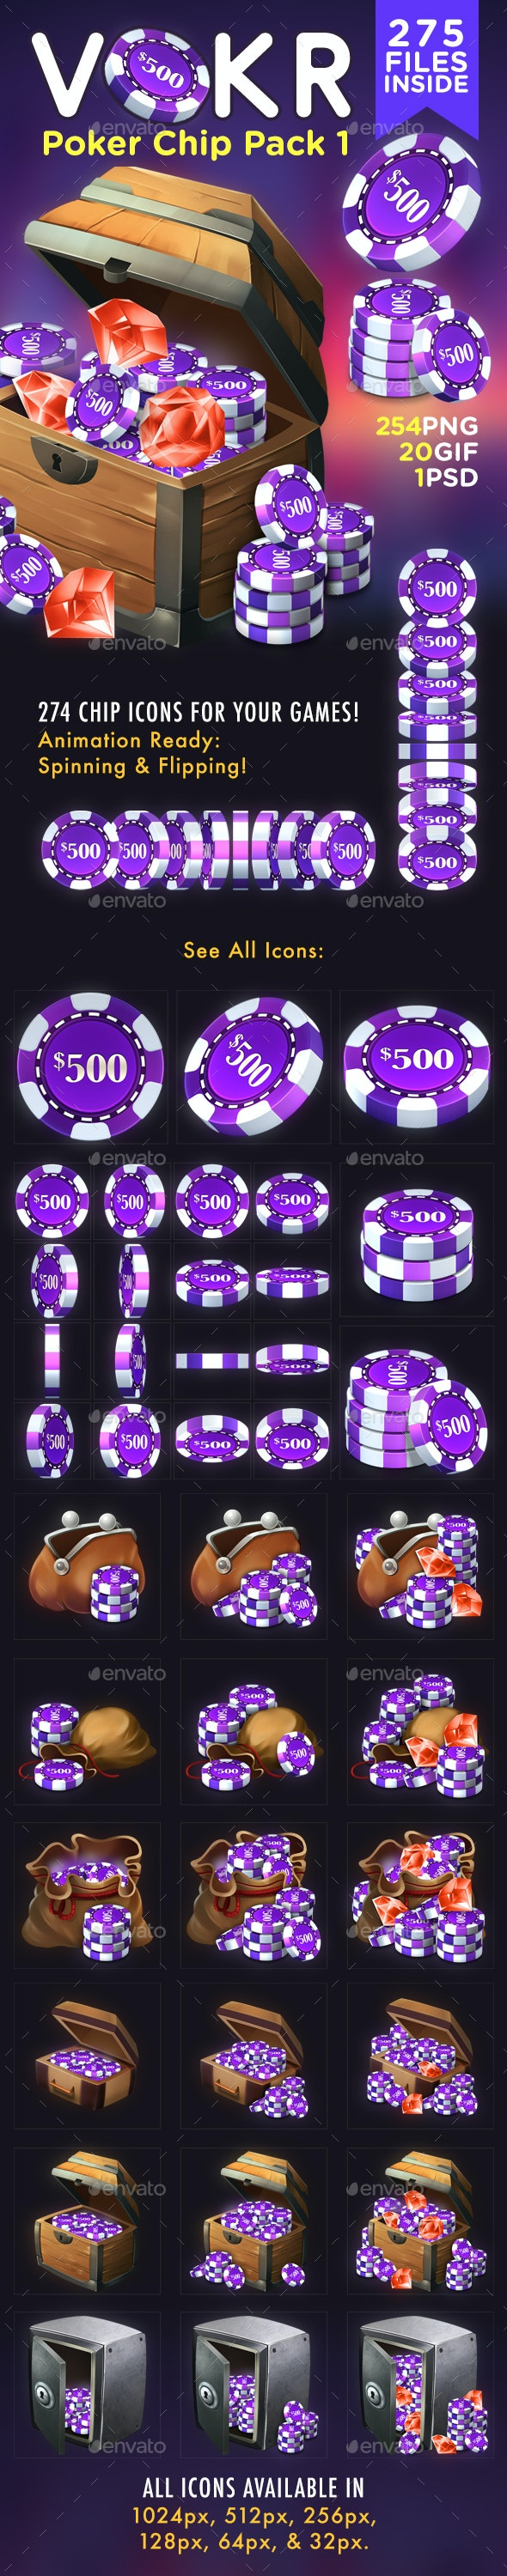 VOKR - Poker Chip Pack 1 - Miscellaneous Game Assets